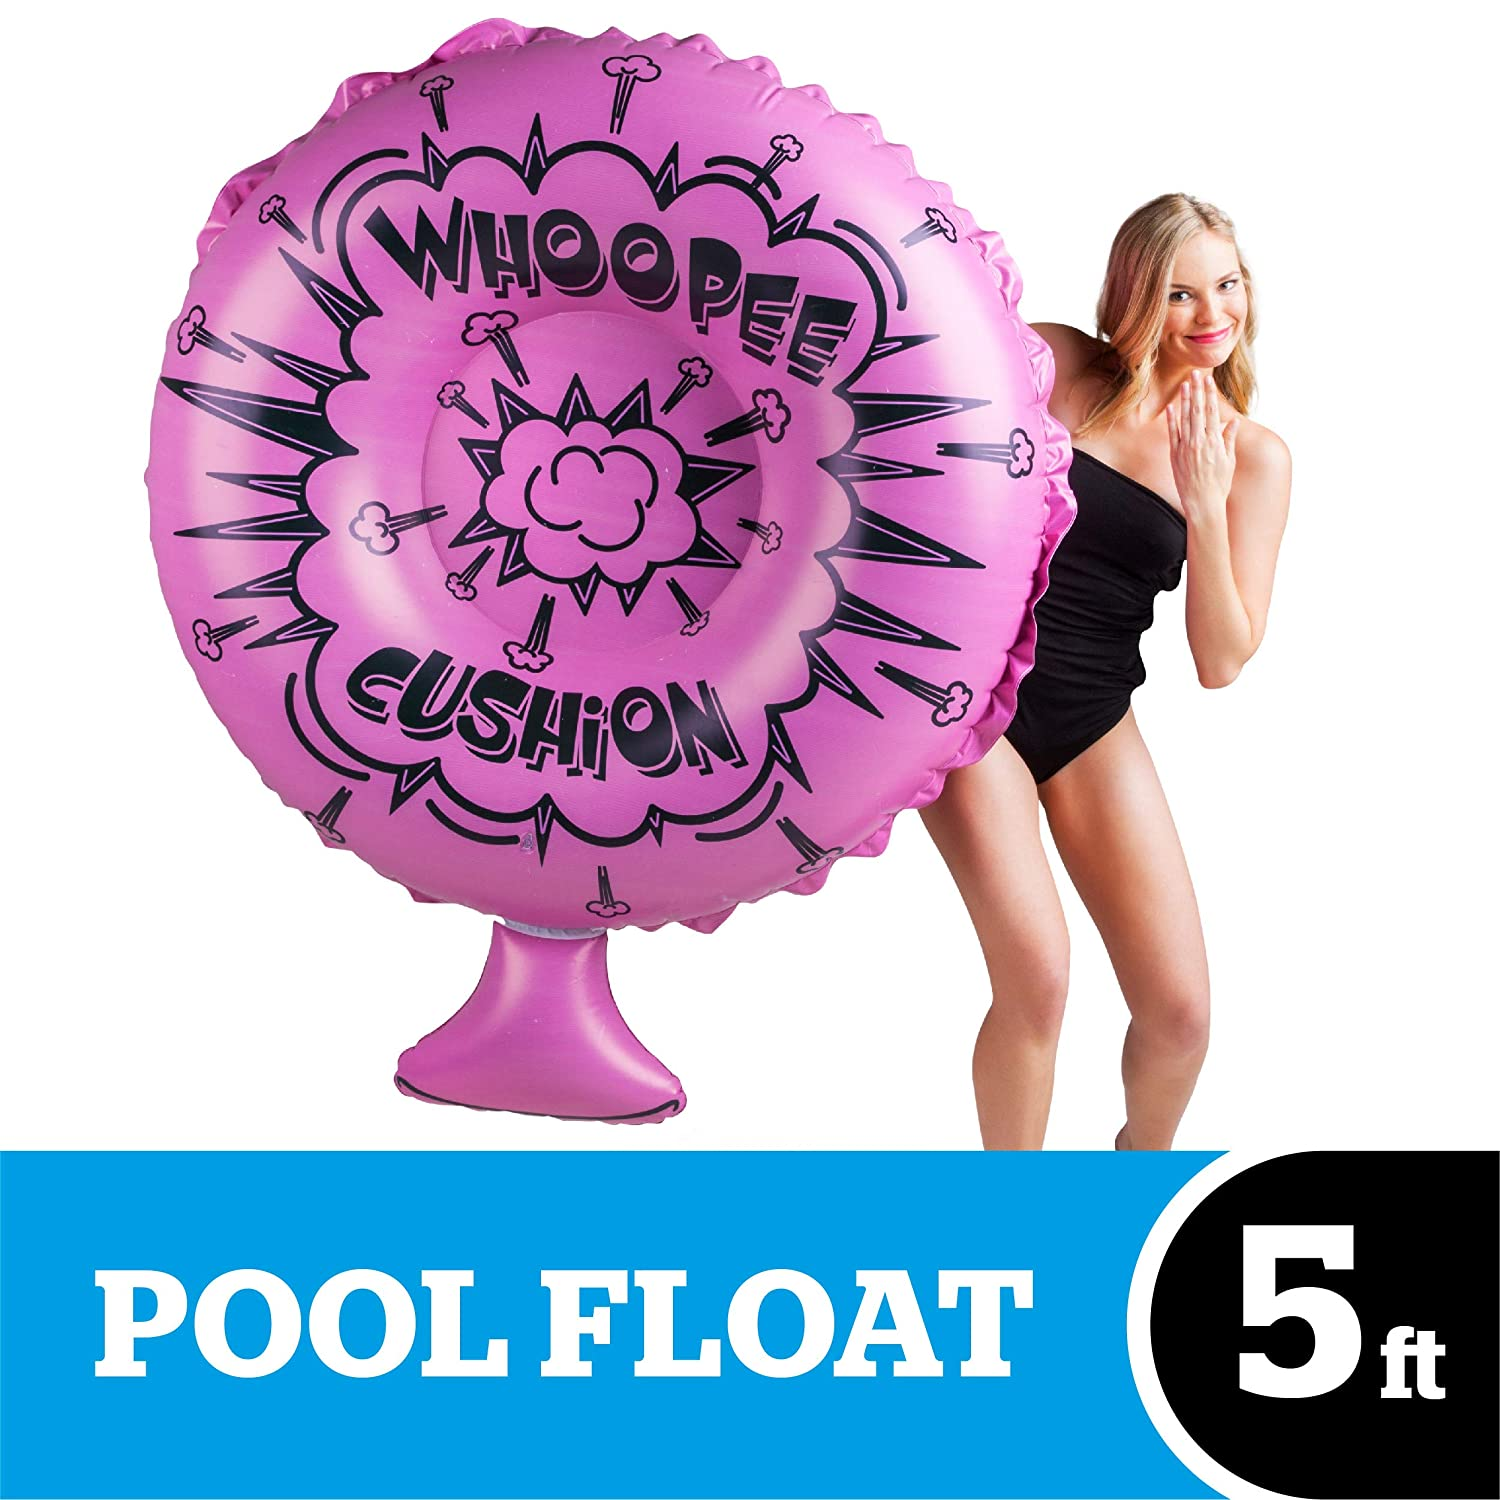 BigMouth Inc Giant Whoopee Cushion Pool Float, DurablePink Summer Pool Toy,  Emergency Repair Kit Included